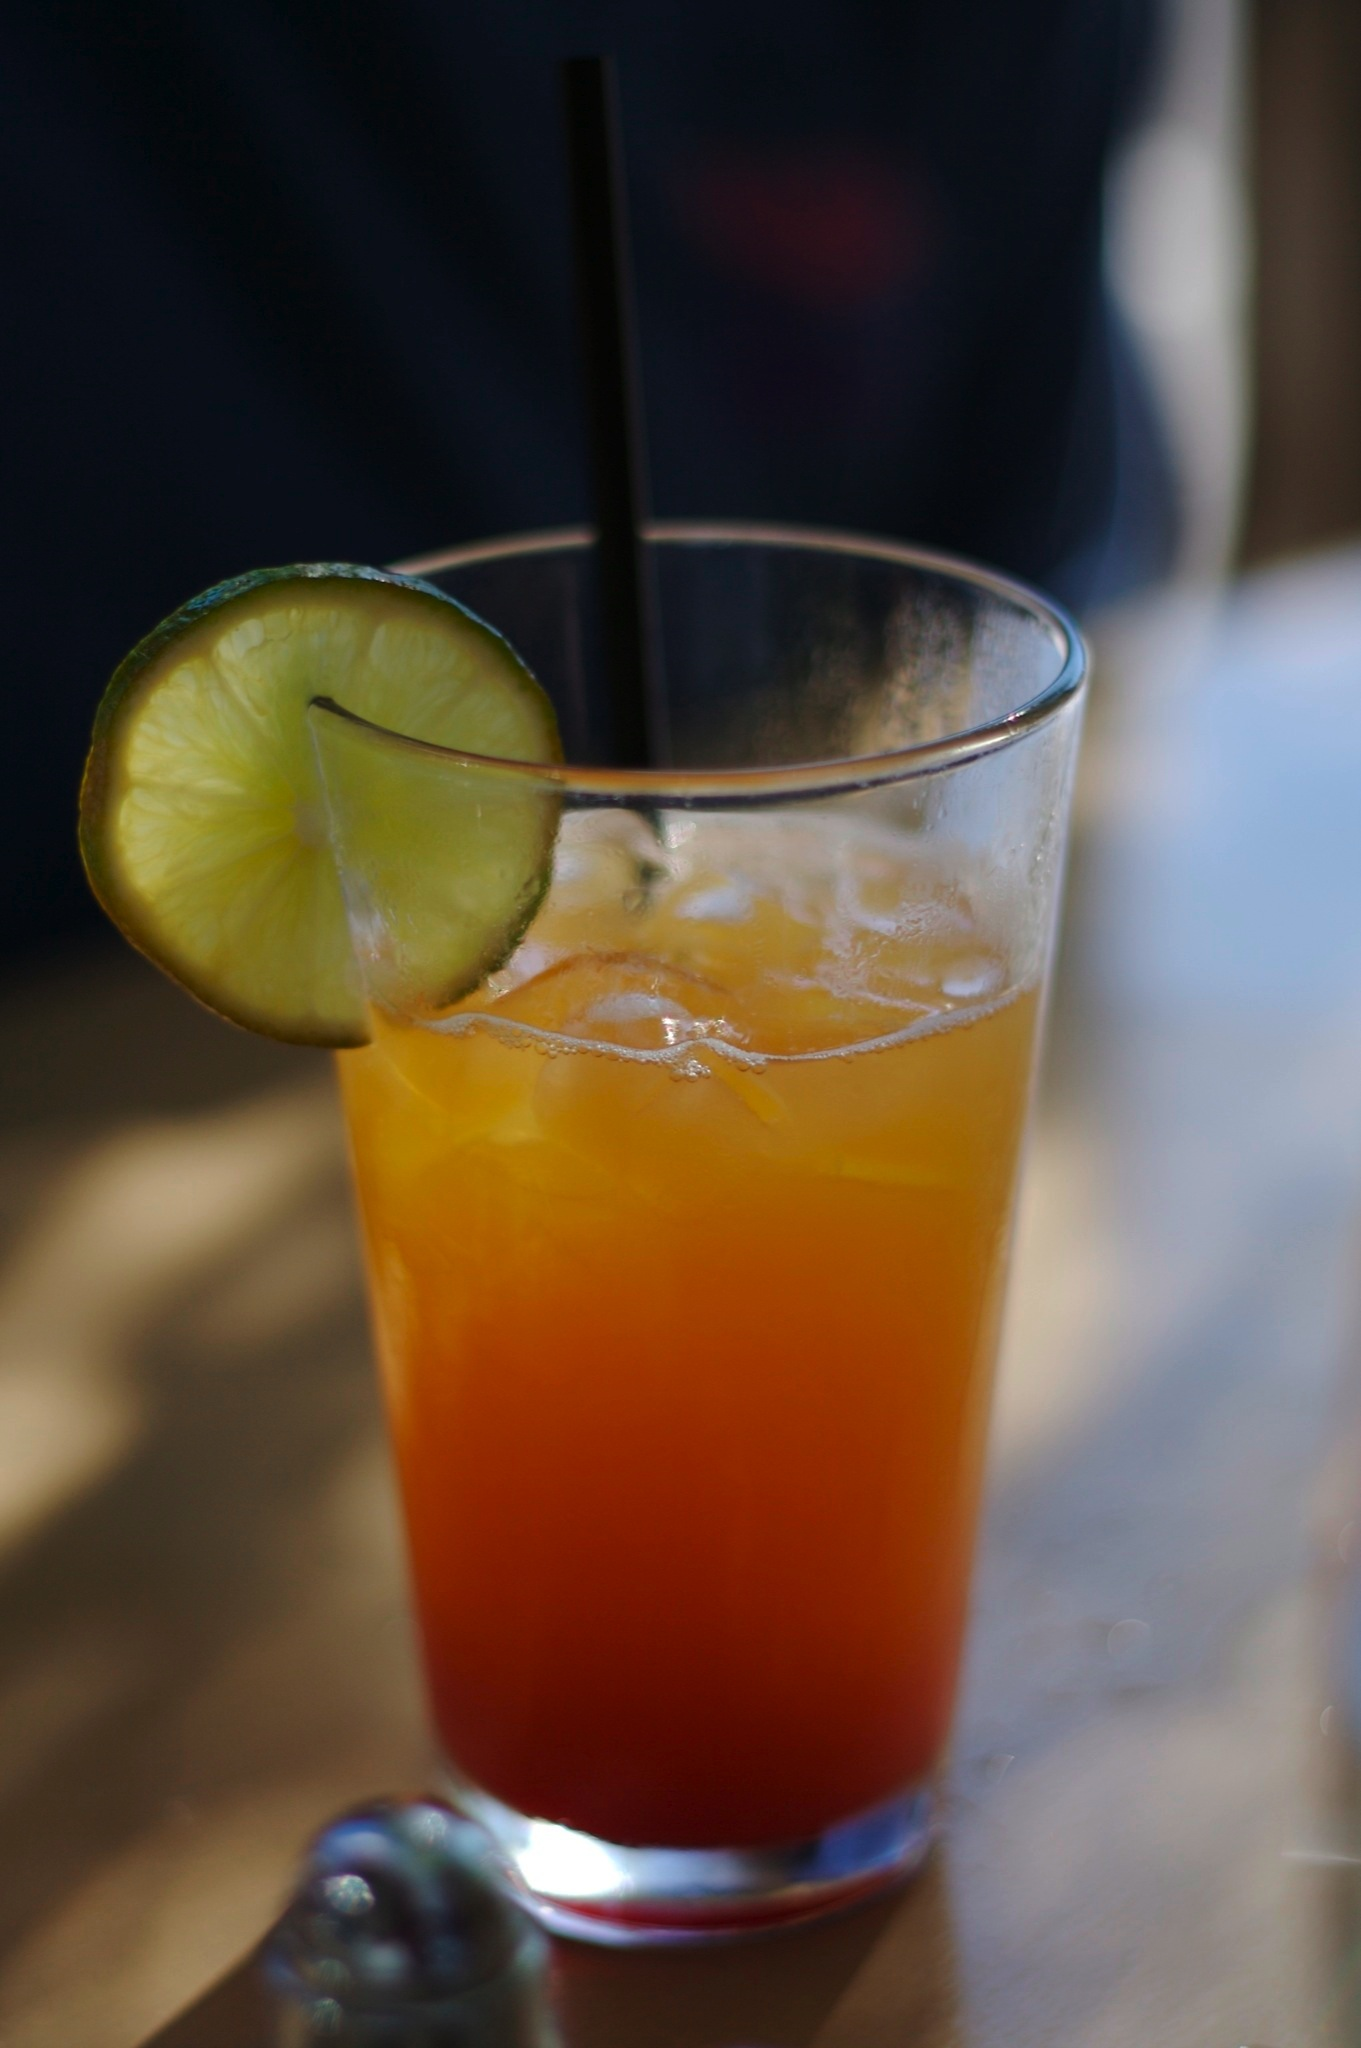 List of non-alcoholic mixed drinks - Wikipedia